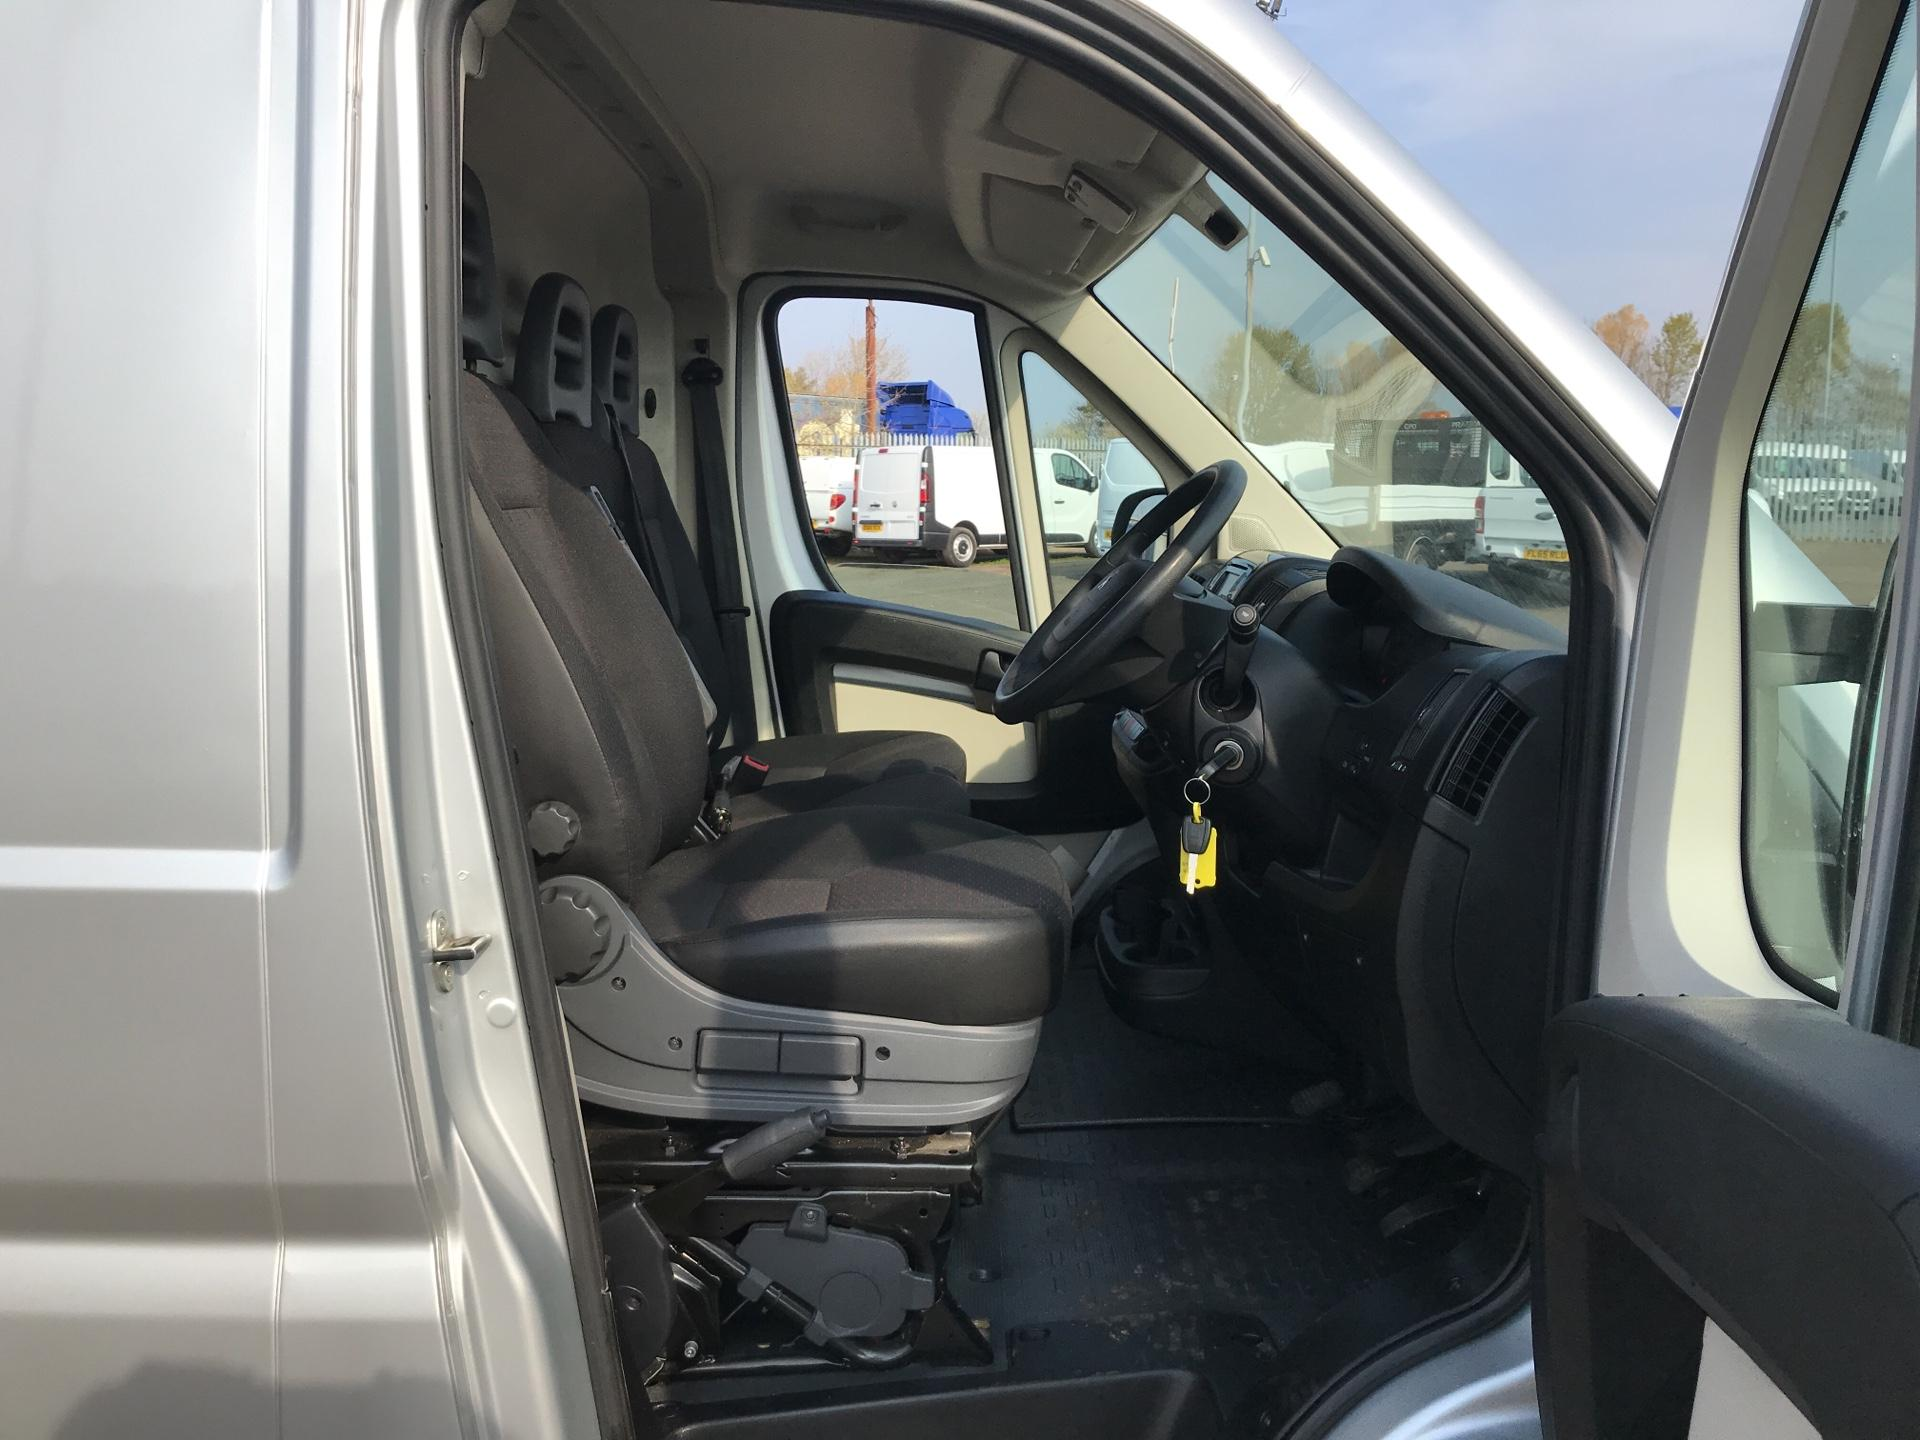 2016 Peugeot Boxer 2.0 Bluehdi H1  Professional Van 110Ps *VALUE RANGE VEHICLE CONDITION REFLECTED IN PRICE* (NG16NMO) Image 9